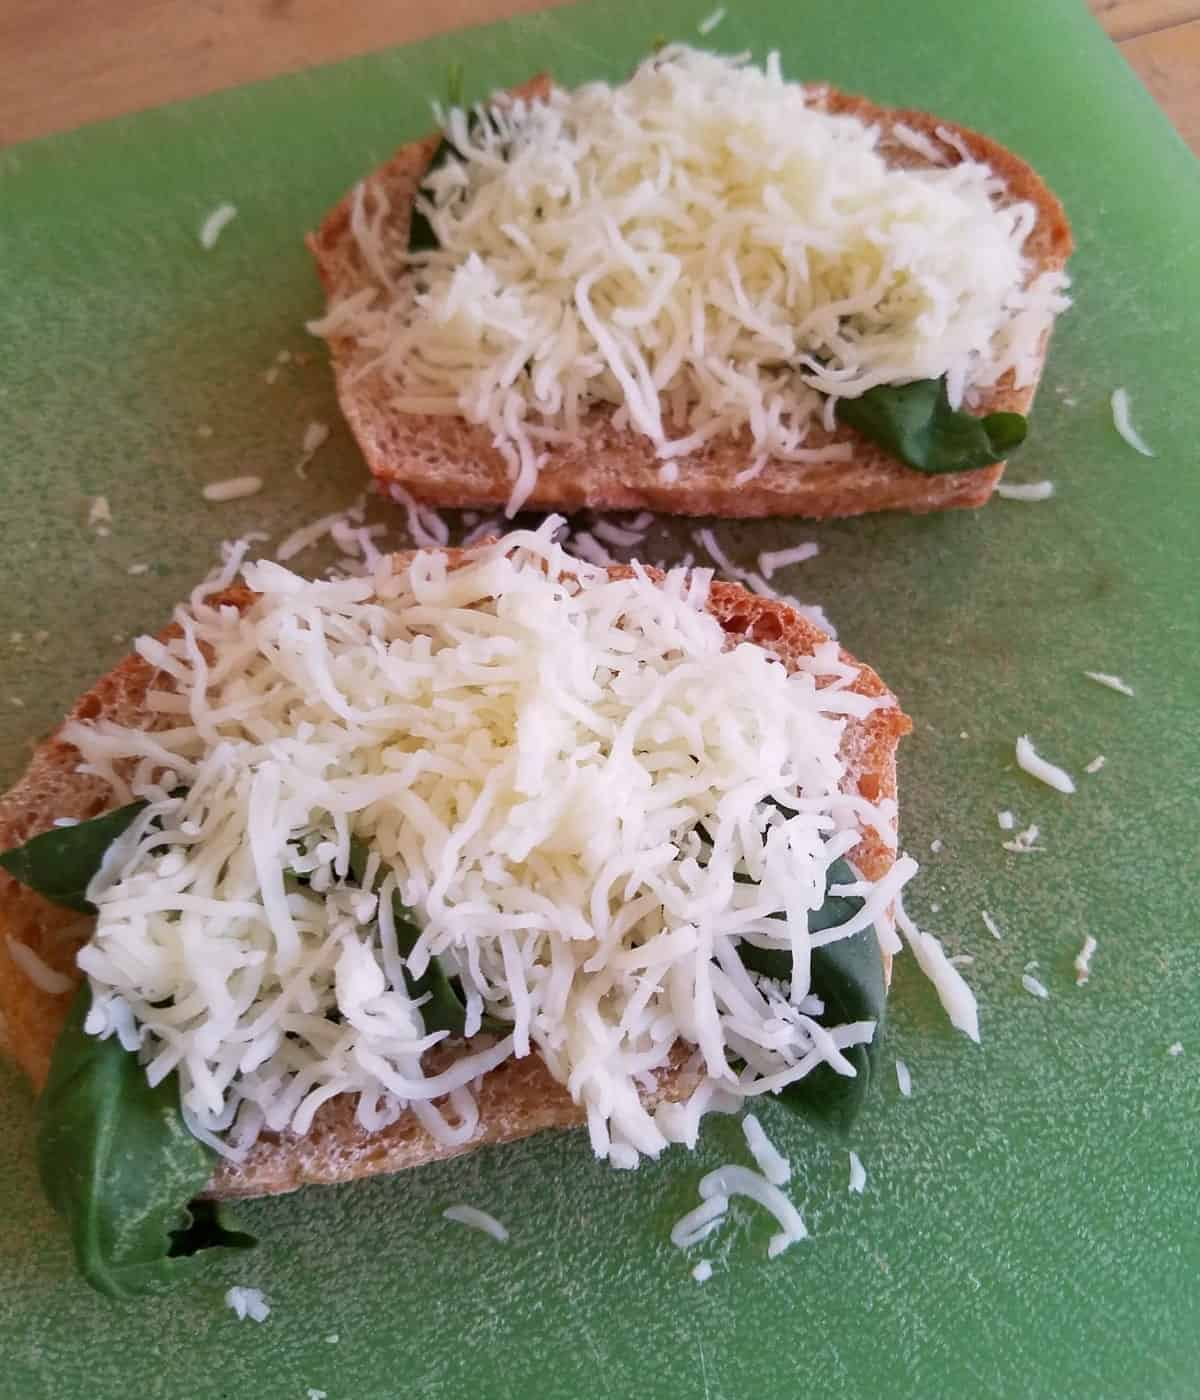 Wheat bread topped with fresh basil leaves and shredded mozzarella.